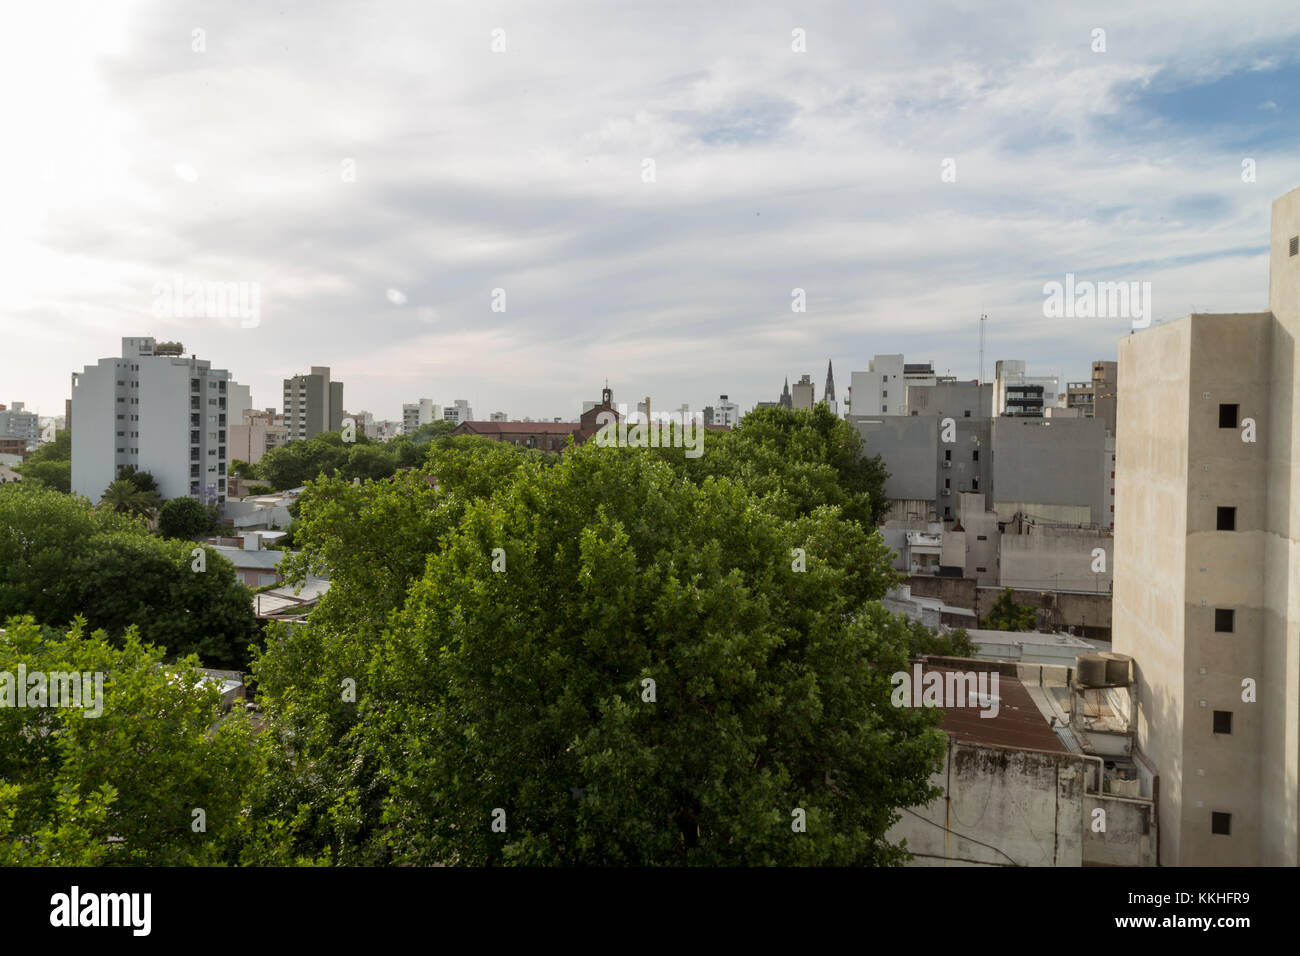 La Plata, Argentina. 1st Dec, 2017. Partly cloudy day in the city. Credit: Federico Julien/Alamy Live News - Stock Image